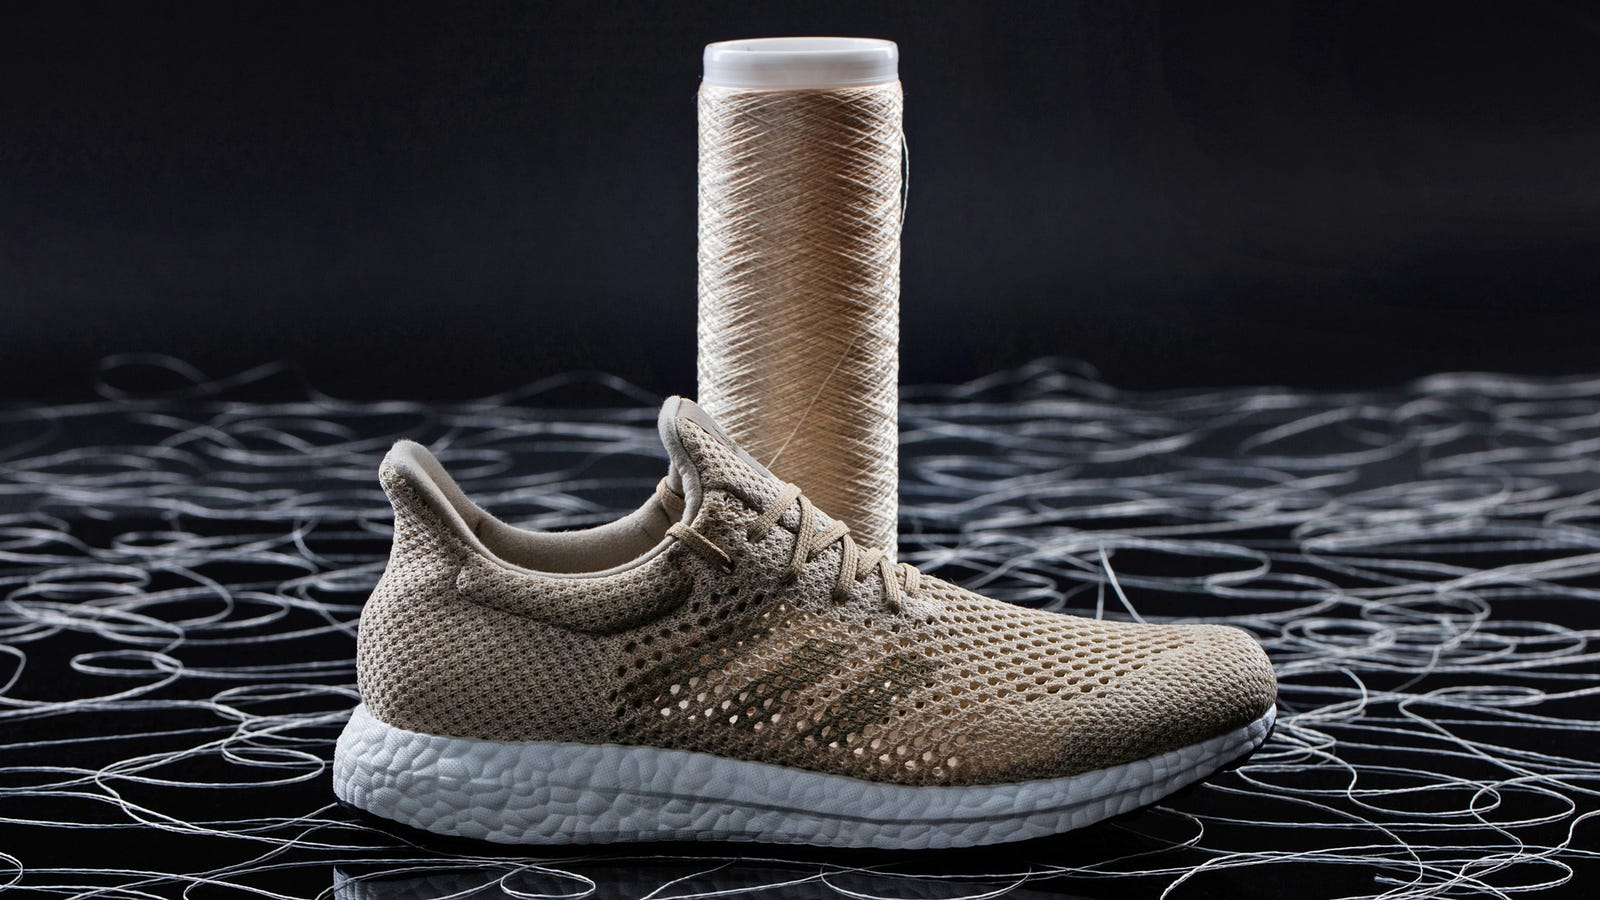 d53bf913effa Adidas  New Biodegradable Sneakers Are Made From Ultra-Strong Artificial  Silk Fibers